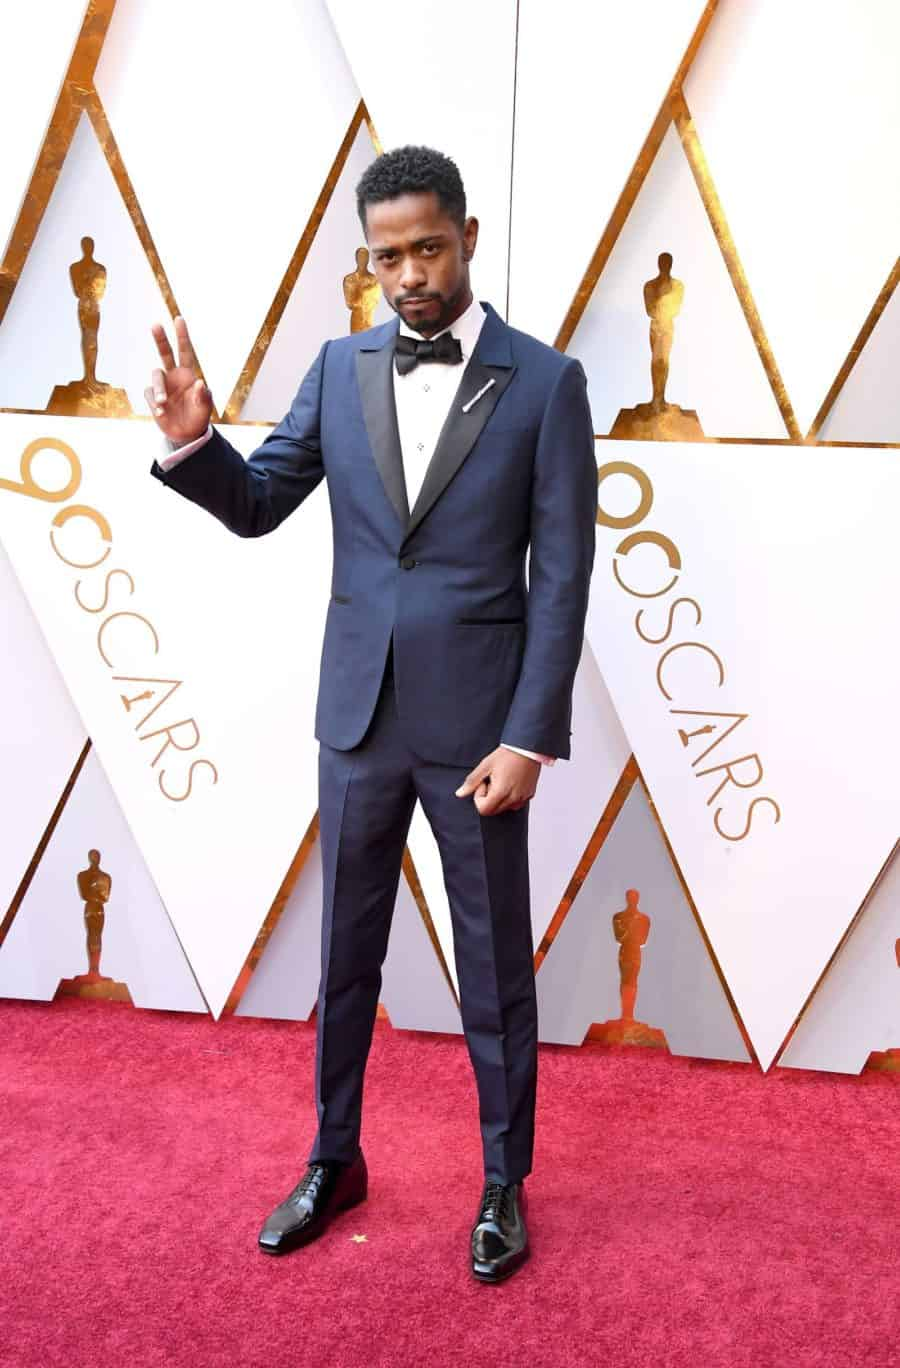 Image of Lakeith Stanfield wearing tuxedo